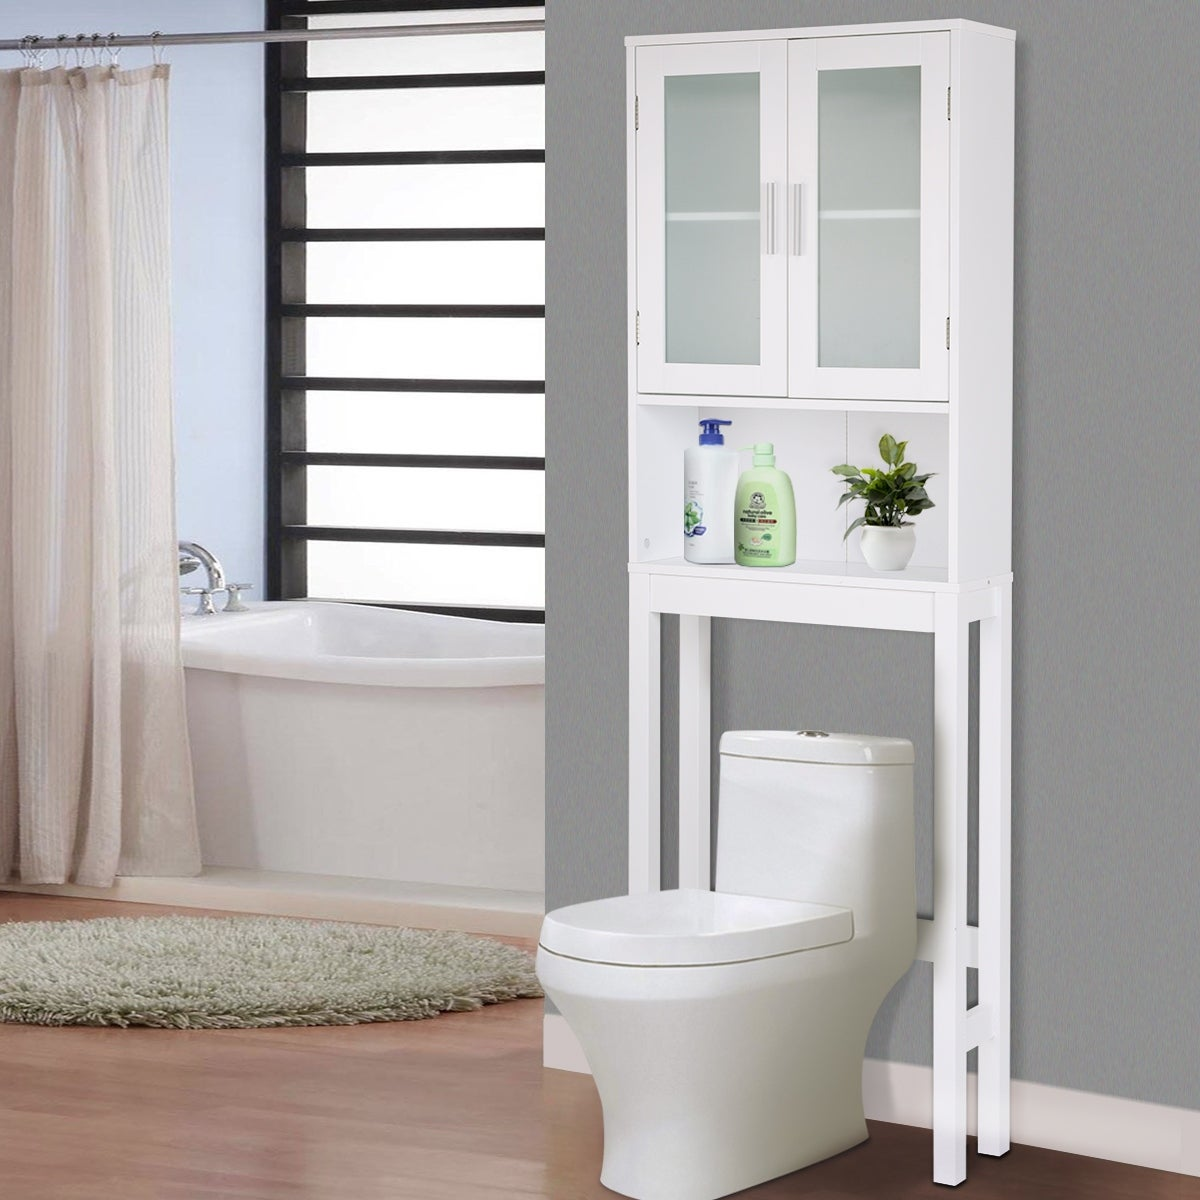 Buy Bathroom Cabinets & Storage Online at Overstock.com | Our Best ...